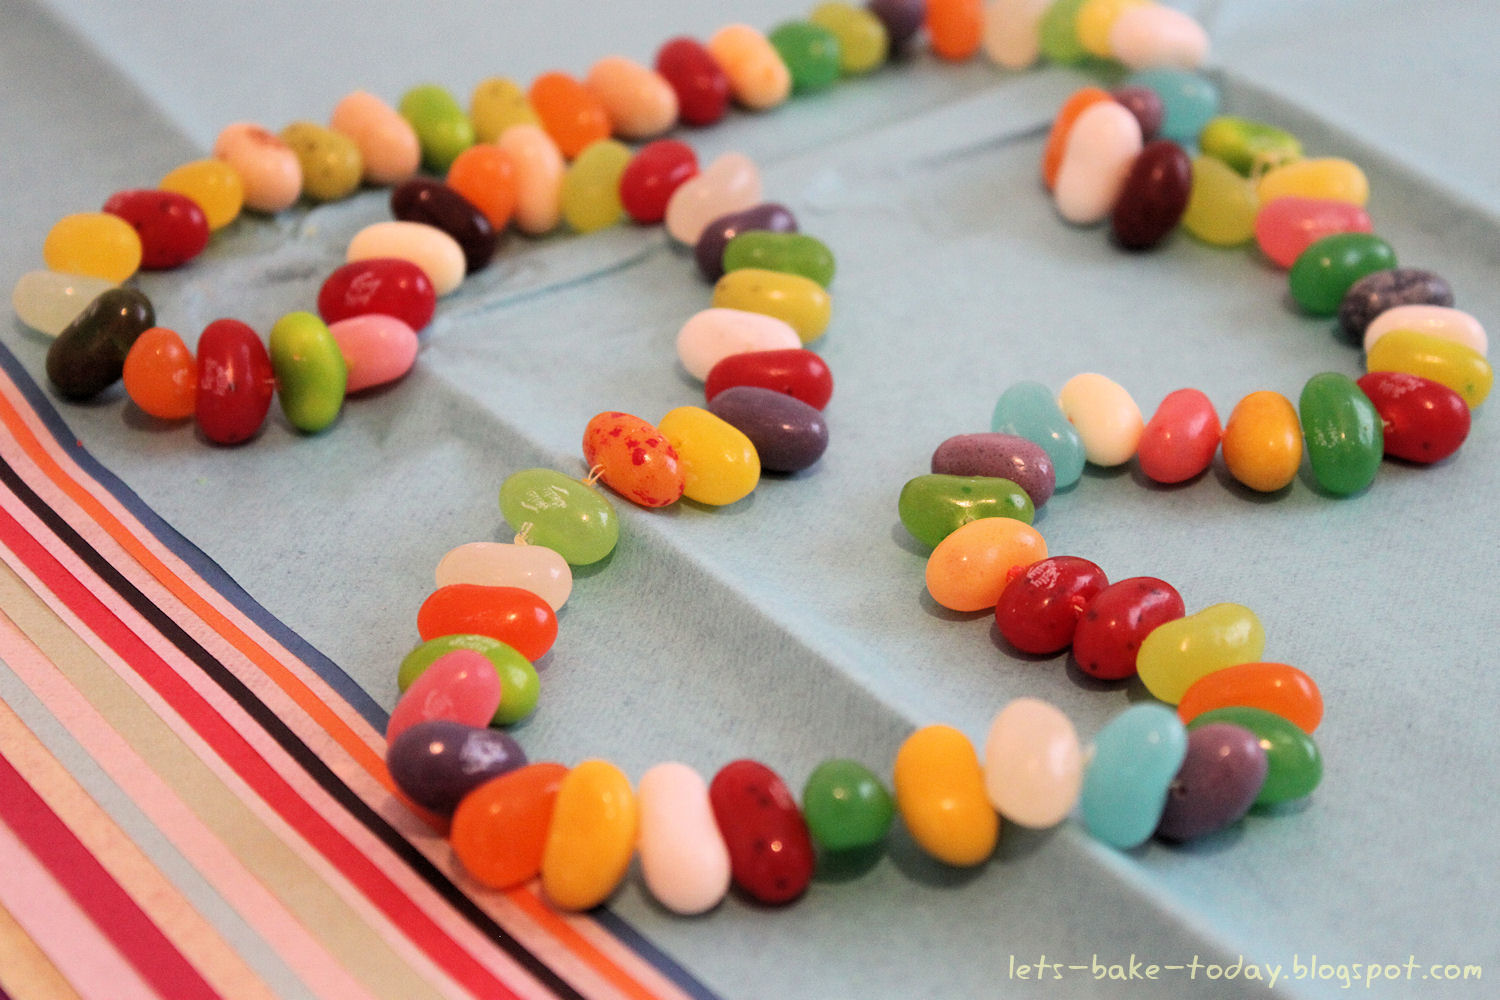 Let's Bake Today!: Jelly Beans Cake